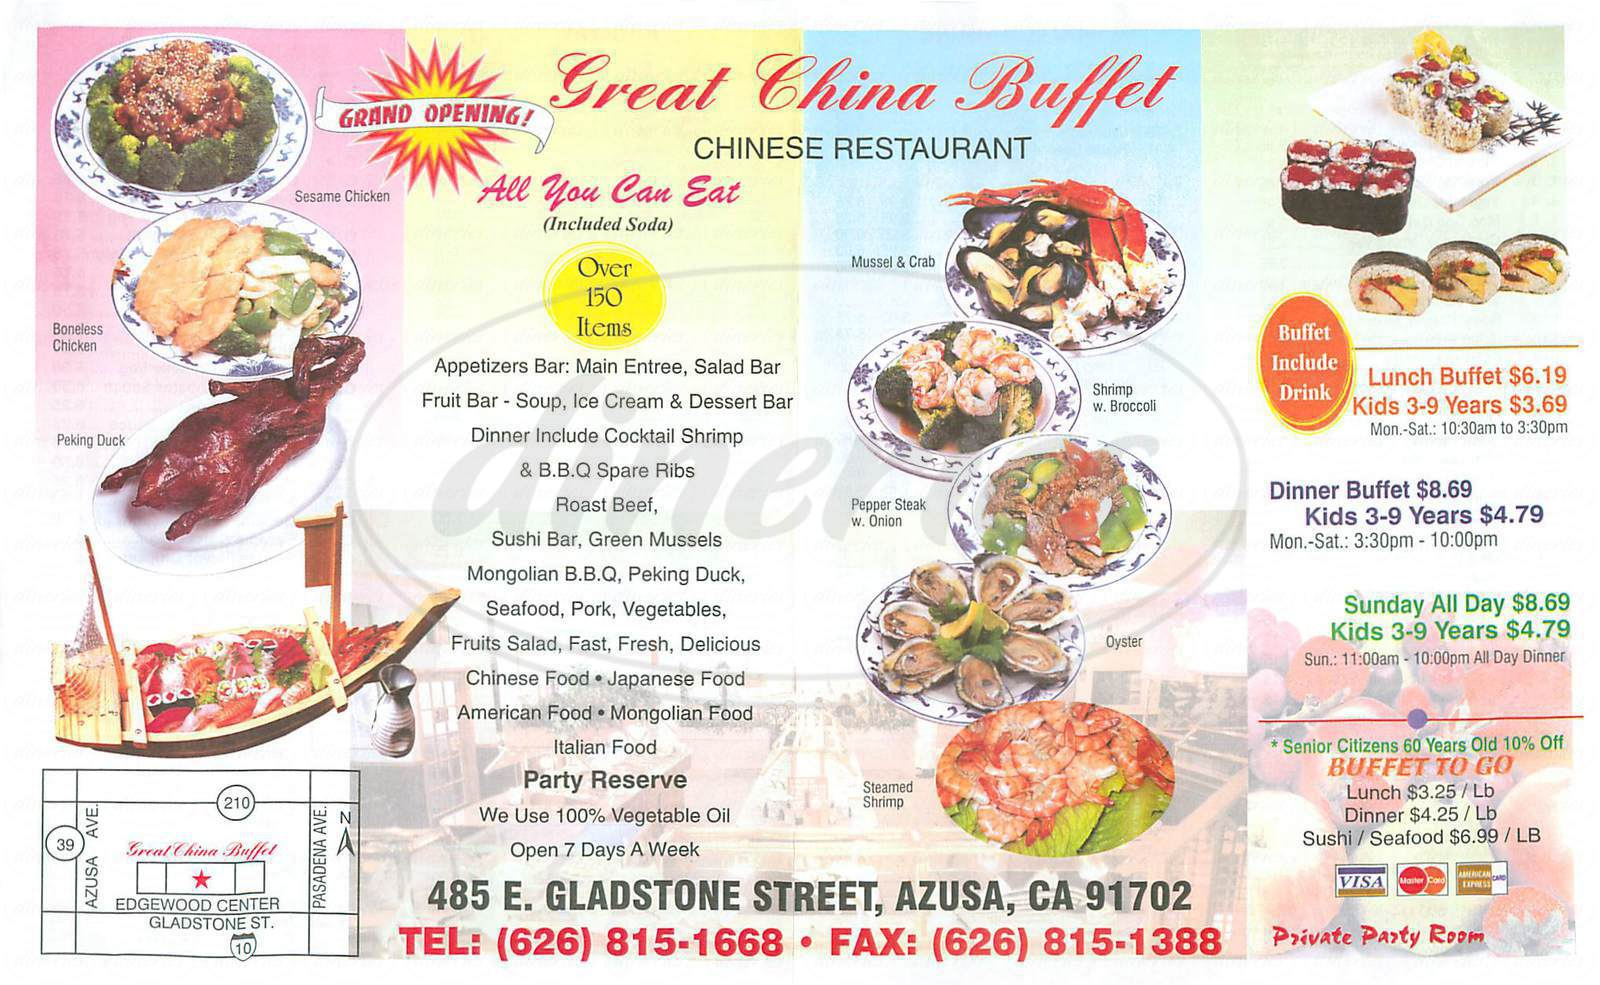 menu for Great China Buffet